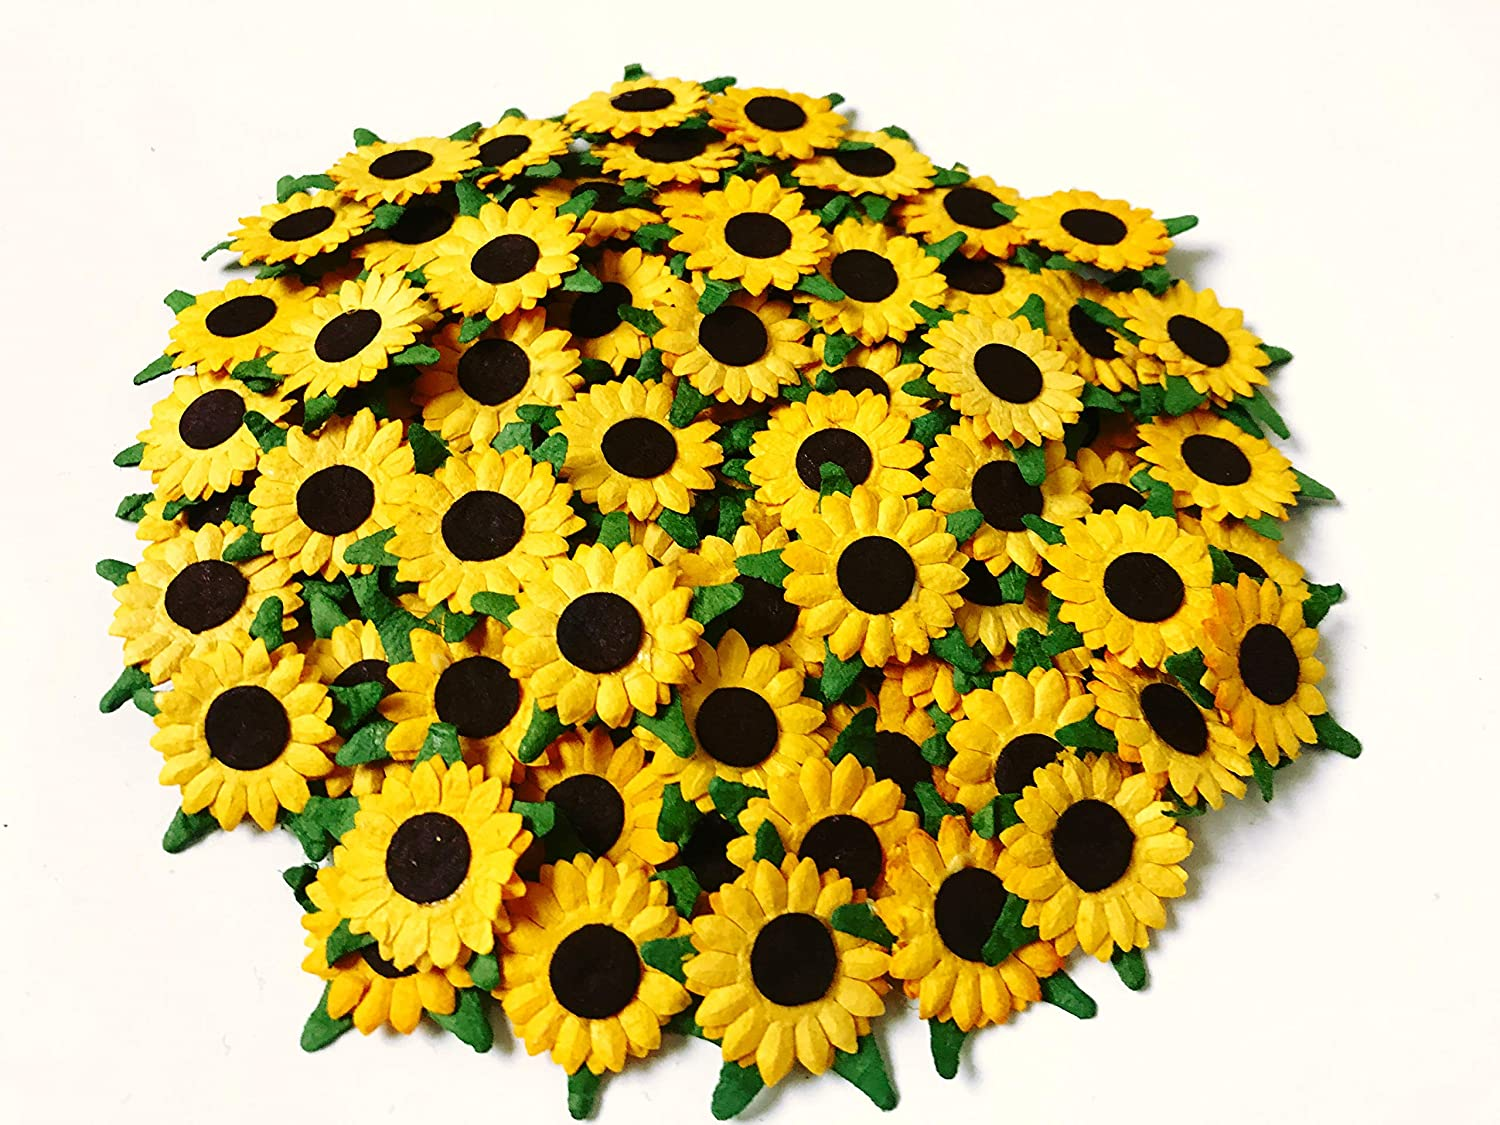 TH 50 pcs. Sunflowers Mulberry Paper Craft Supplies Scrapbook Card Flower Embellishments 20 mm. for so Many Card Craft Projects